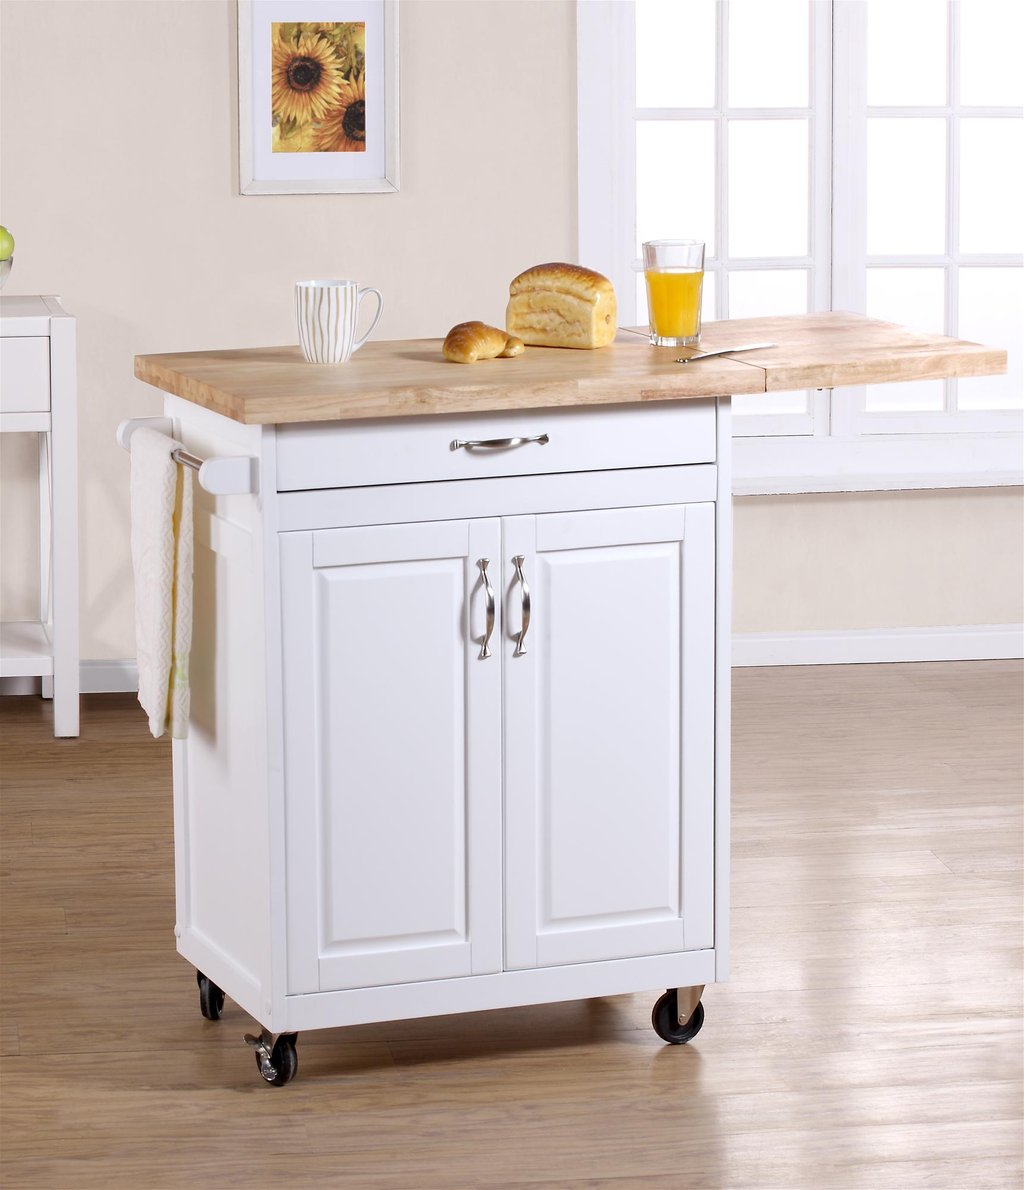 Movable Kitchen Island Midcityeast Kitchen Islands With Stools Ideas